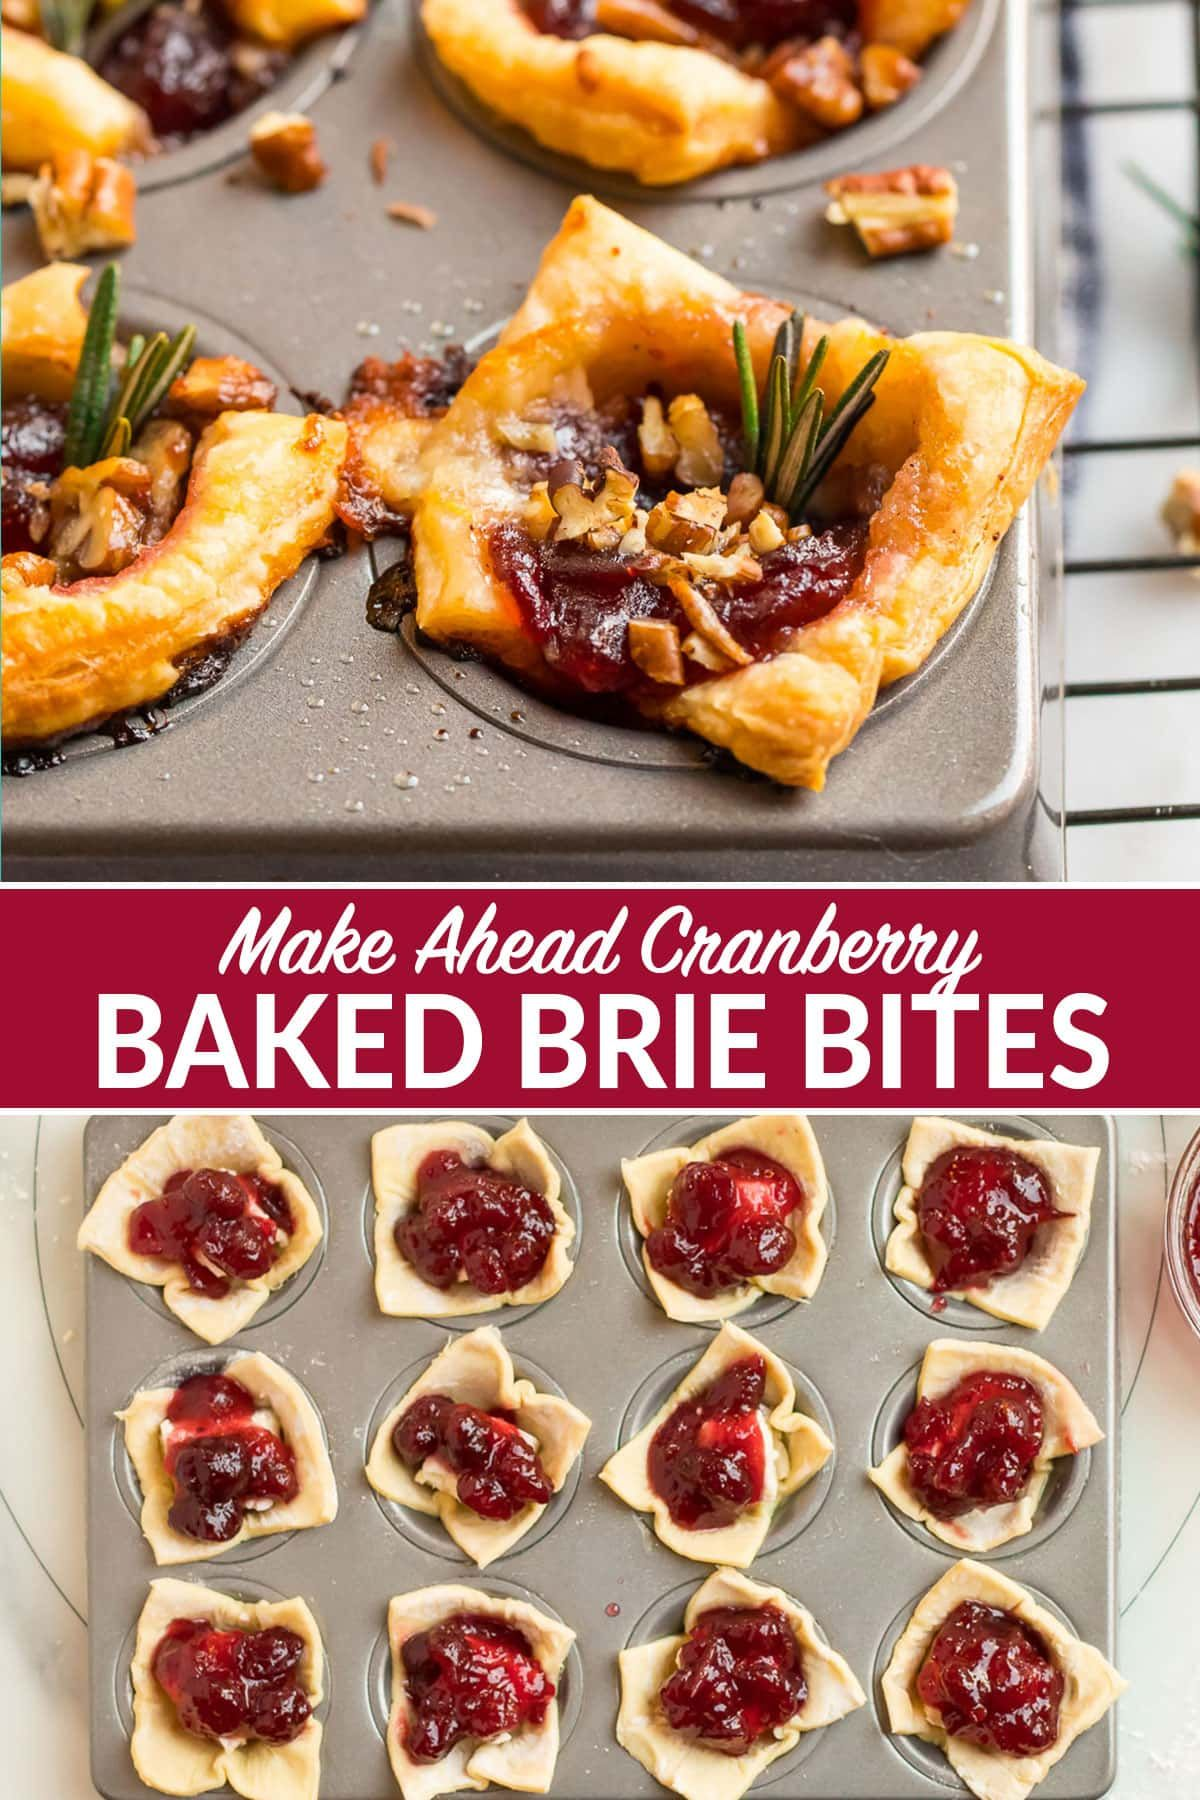 These Easy Baked Brie Bites Are The Ultimate Make Ahead Holiday